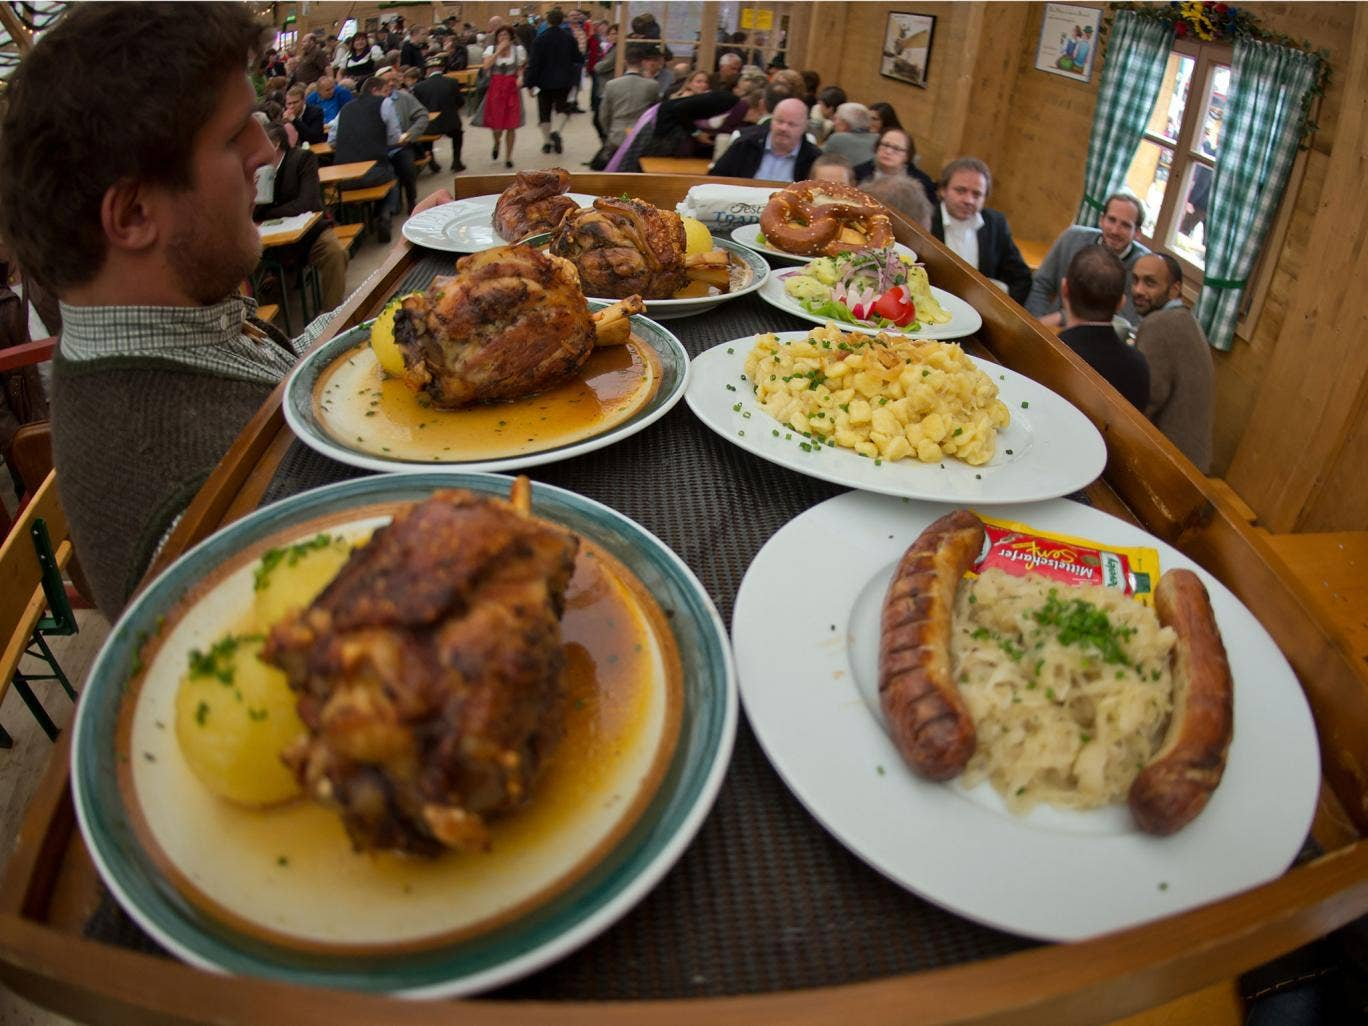 MUNICH, GERMANY - OCTOBER 1: A waiter carries a large tray of meals at the Oktoberfest 2013 beer festival at Theresienwiese on October 1, 2013 in Munich, Germany. This year some caterers offer vegetarian and vegan meals at the Oktoberfest. But as waiters